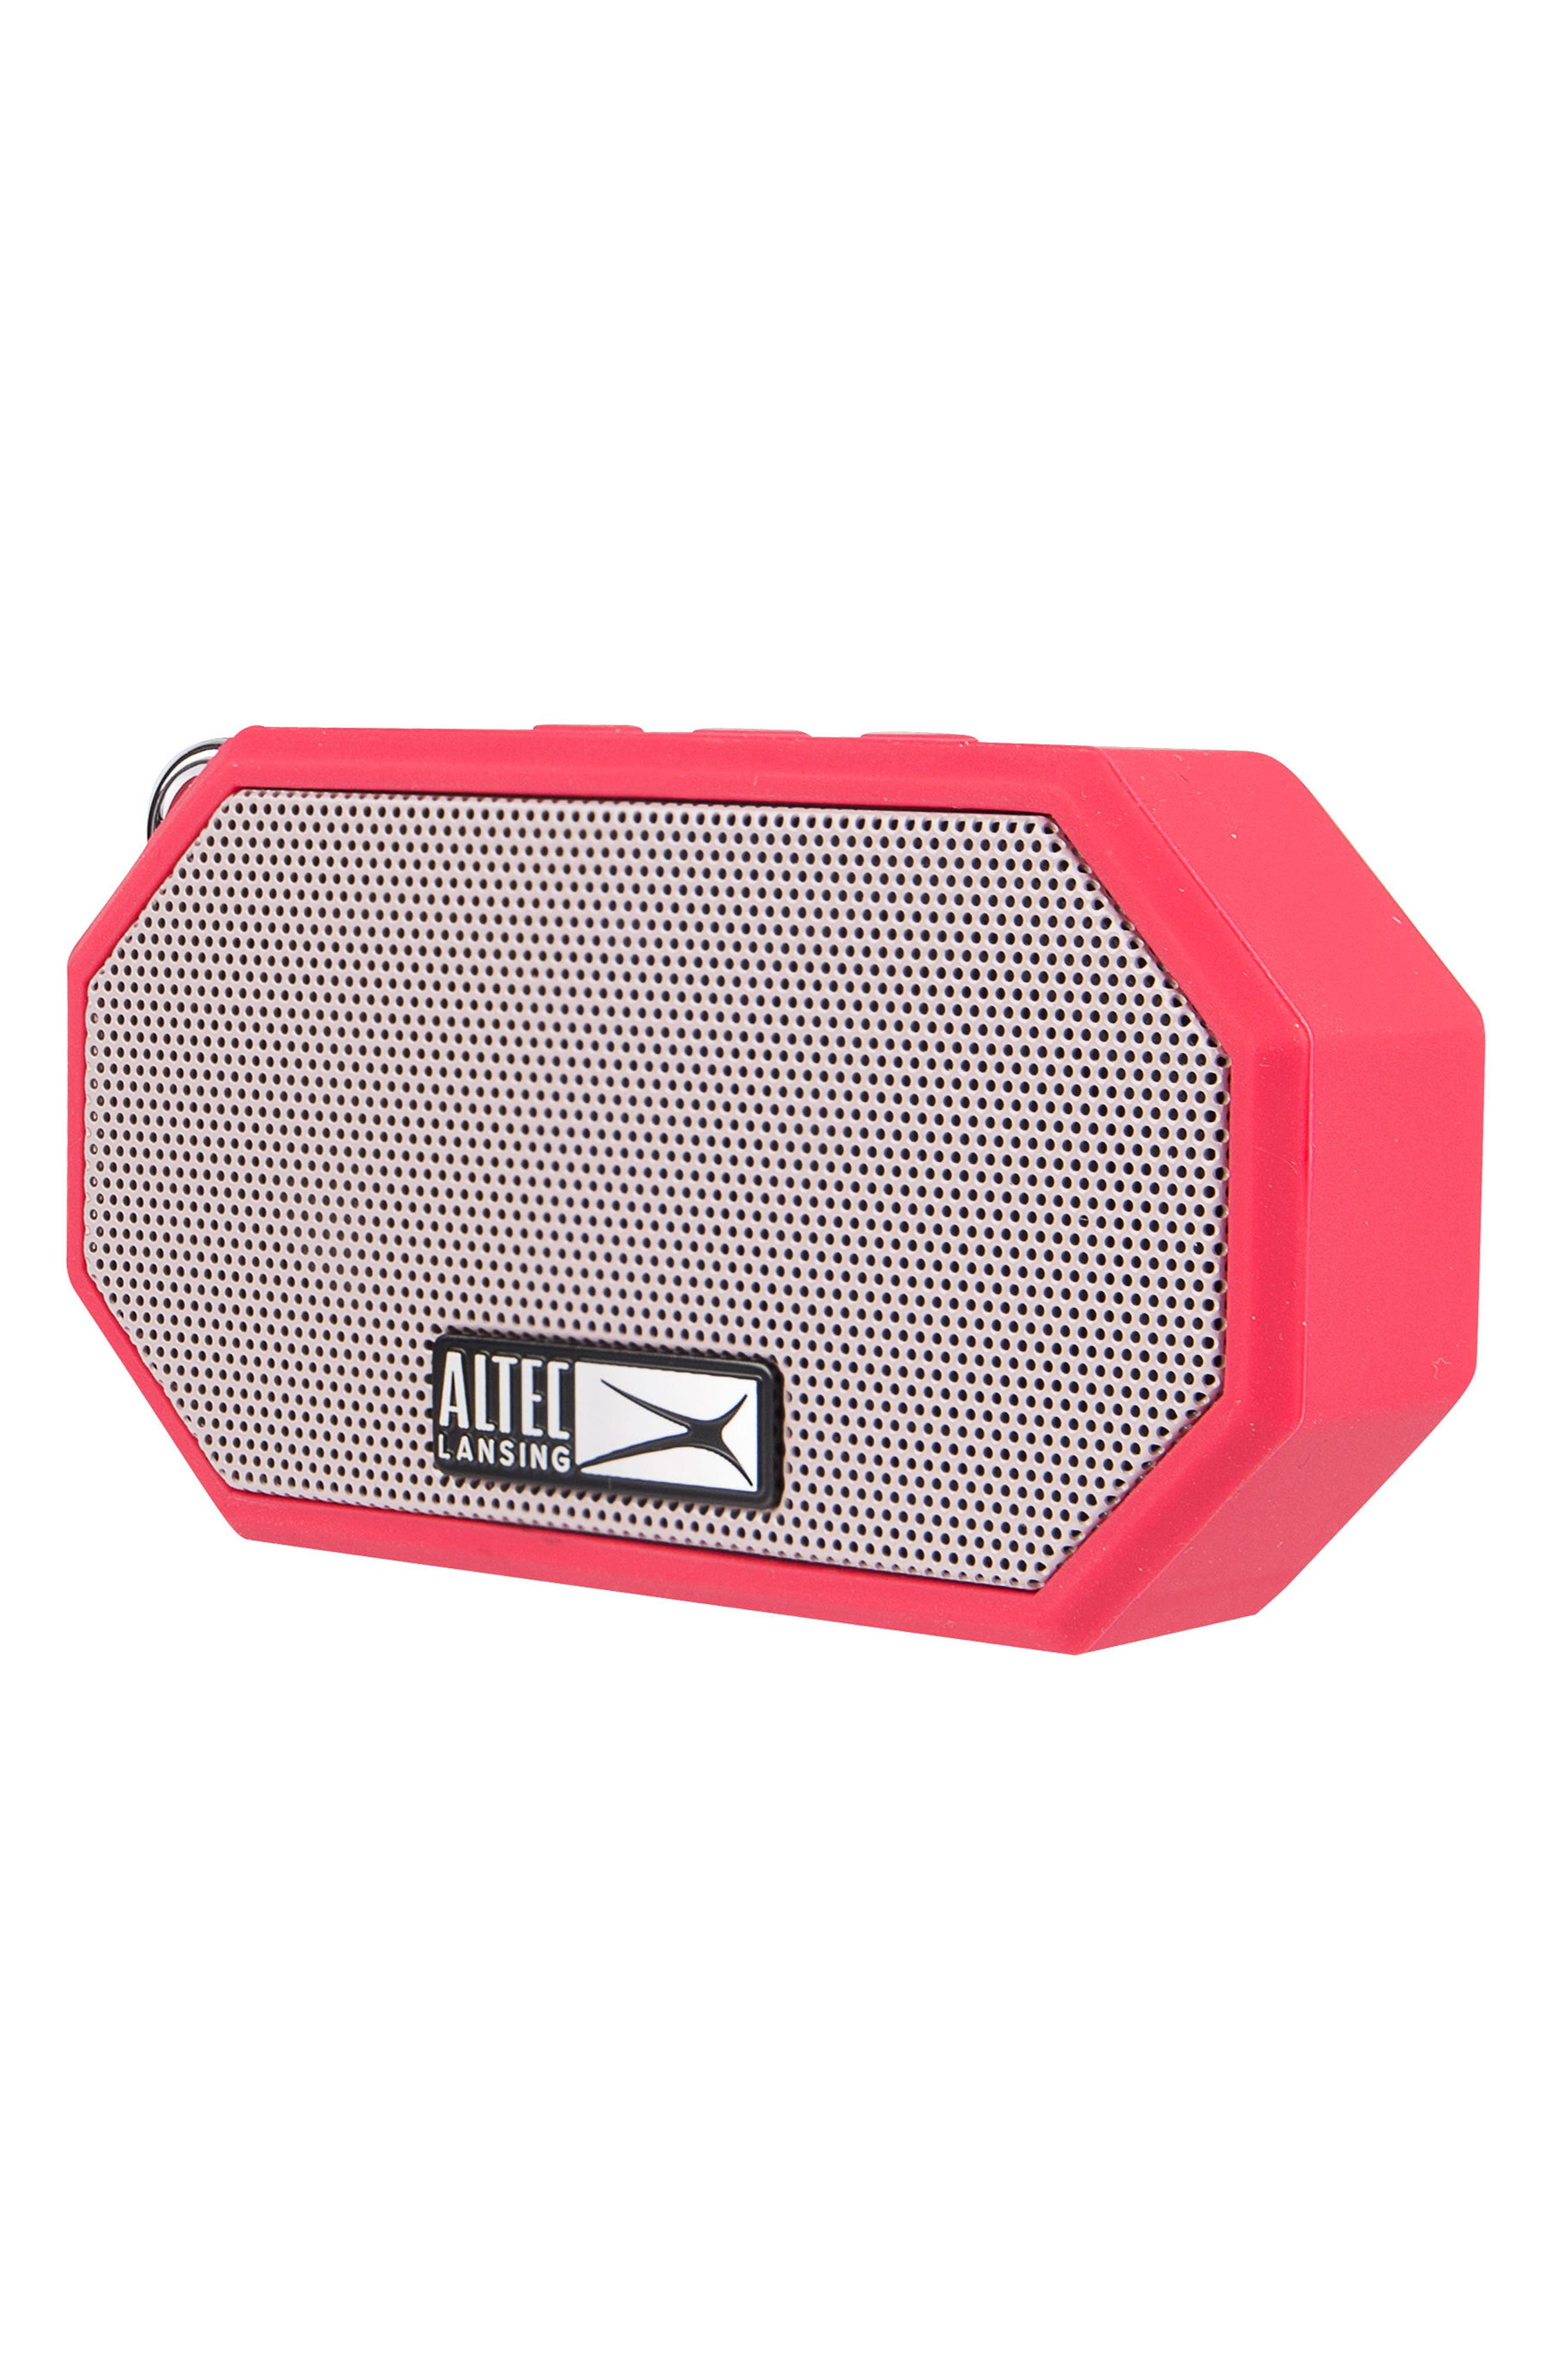 Altec Lansing Mini H2O 3 Waterproof Compact Speaker